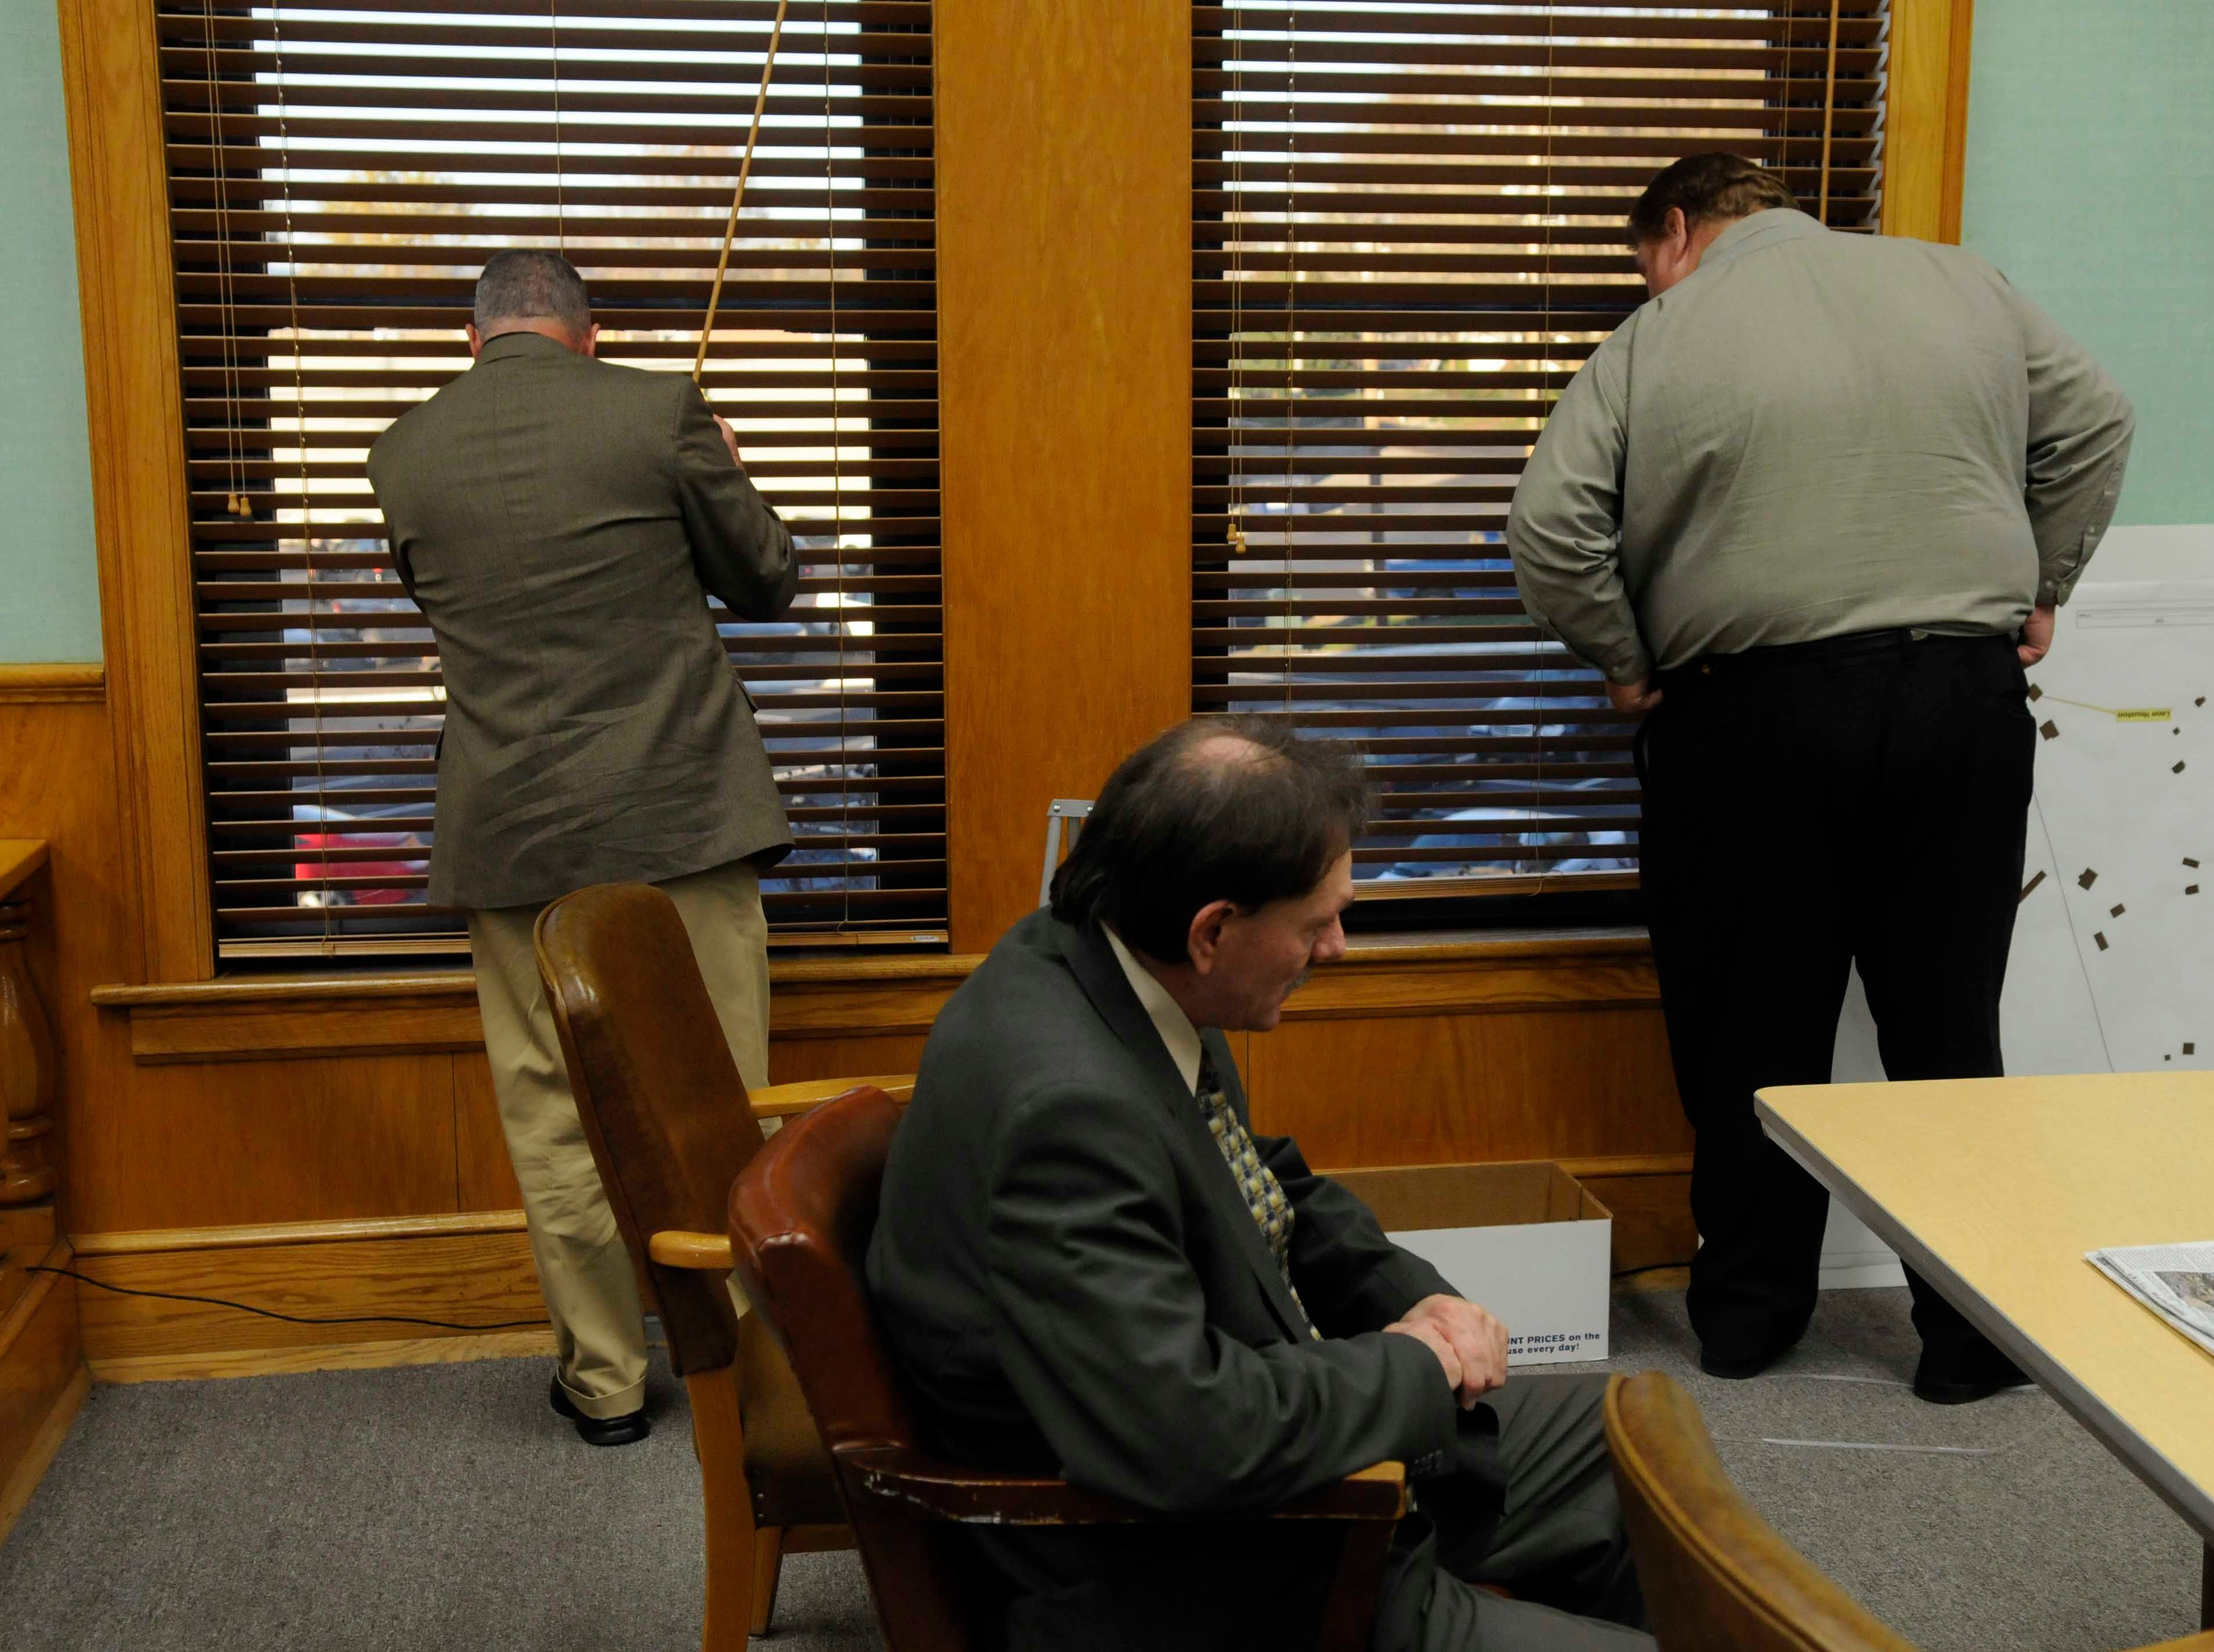 Clifford Leon Houston sits in his seat while Roane County Sheriff Jack Stockton, left, and private investigator Kenny Coleman, right, check to see that all the victims families have left the parking lot of the courthouse. Houston was found not guilty Thursday, Nov 12, 2009 of any charges in the May 2006 deaths of Roane County Sheriff's Office Deputy William Birl Jones, 53, and his ride-along friend Gerald Michael Brown, 44.